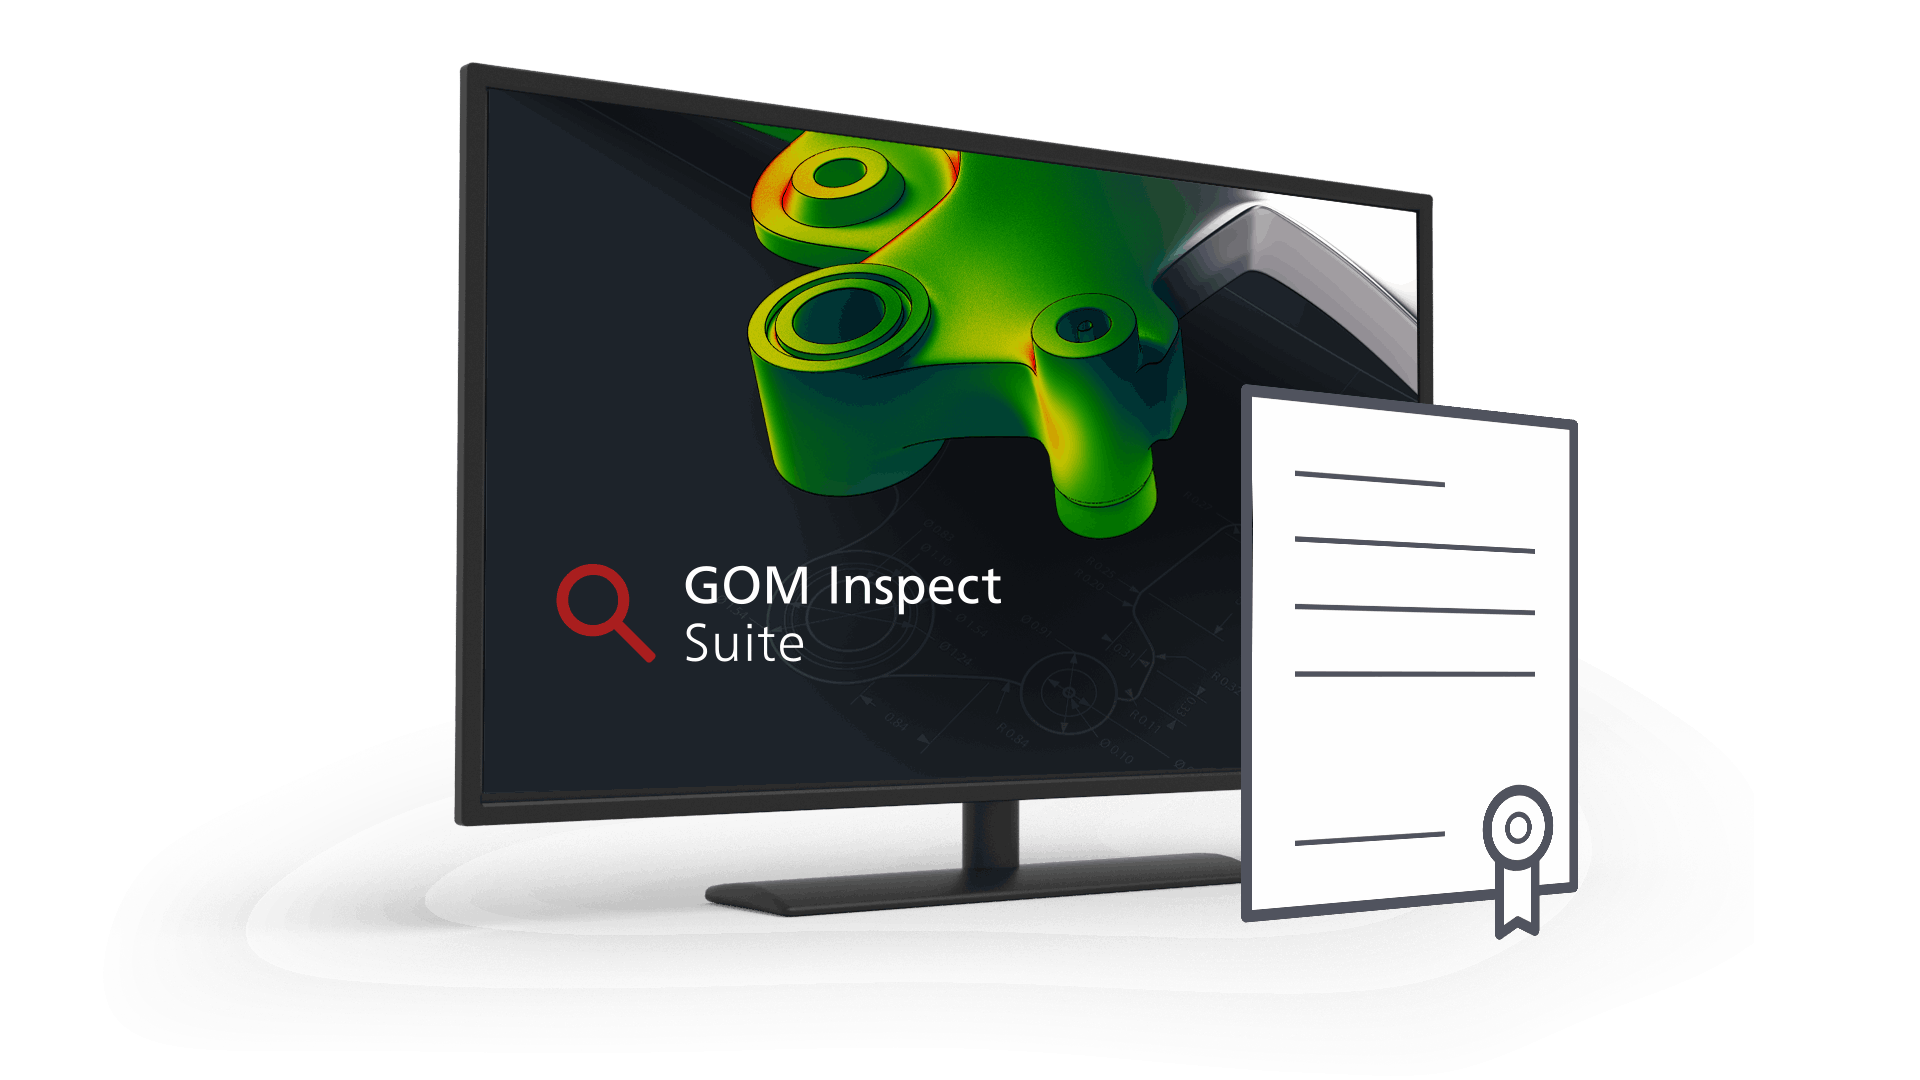 GOM Inspect Suite Tested high precision